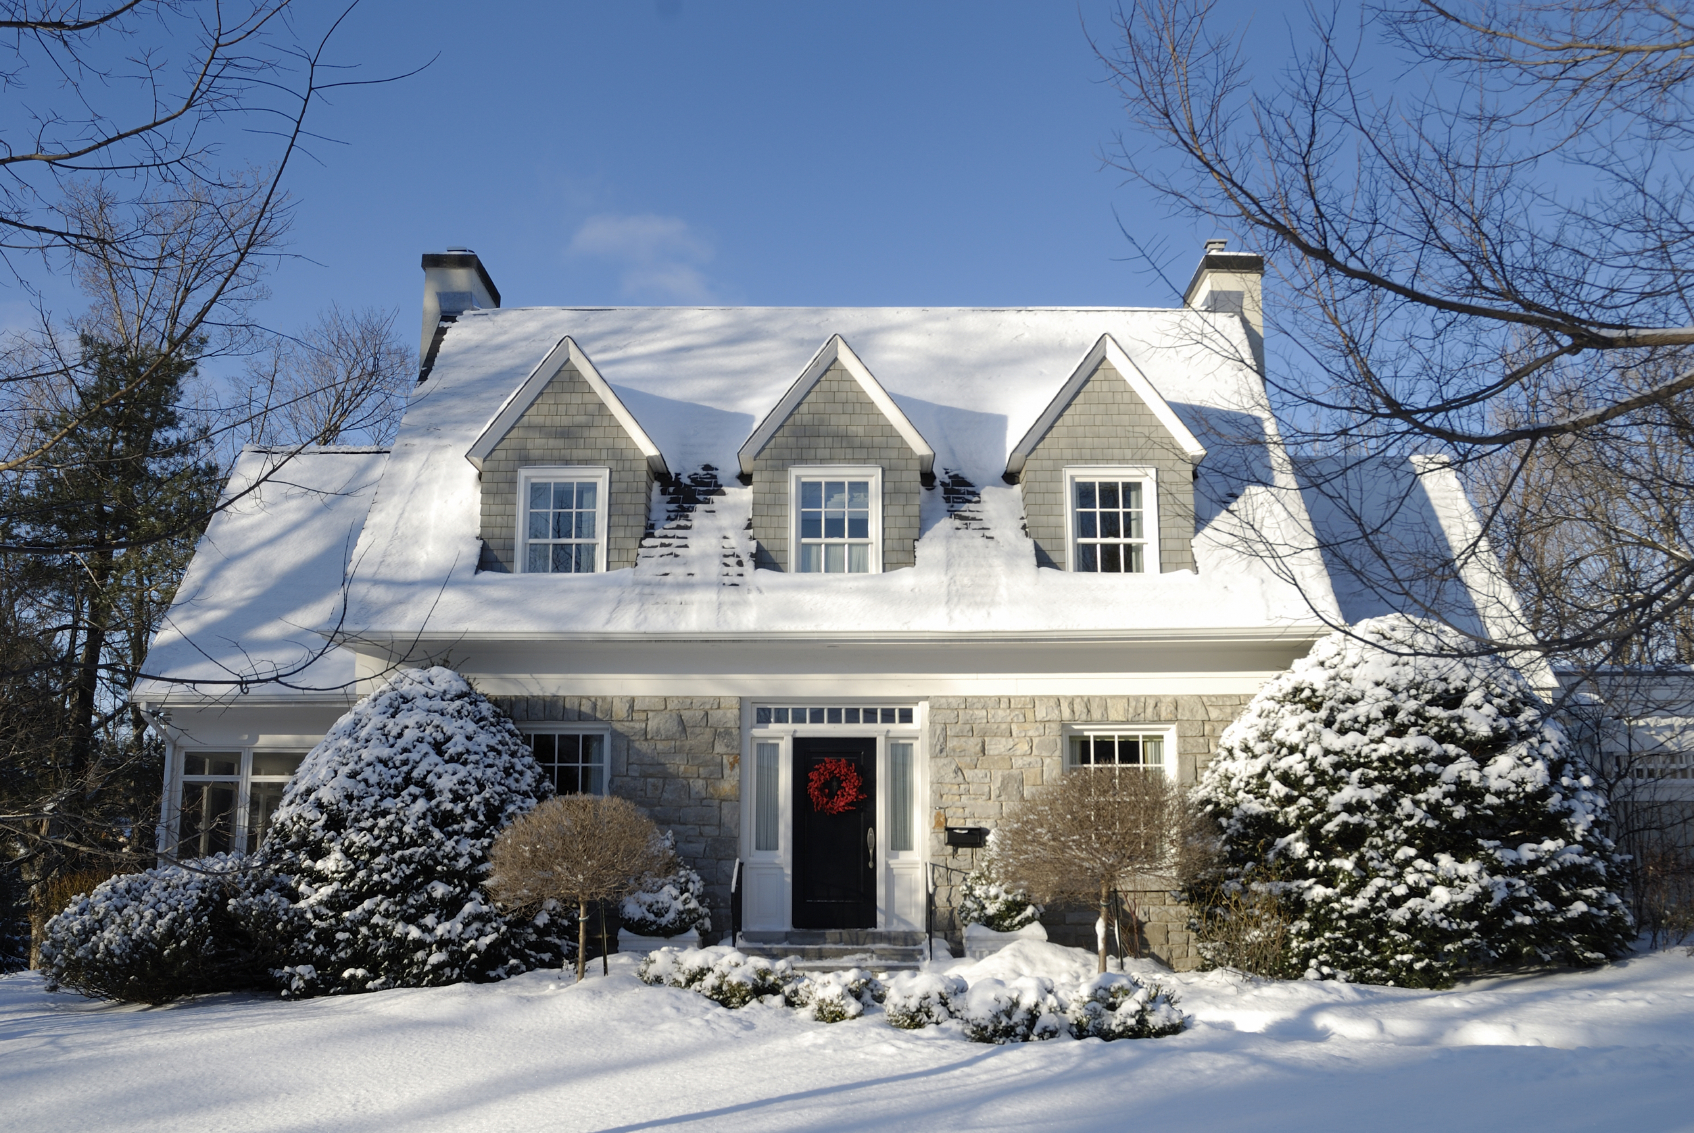 Photo of How To Prep Up Your Property For The Holidays